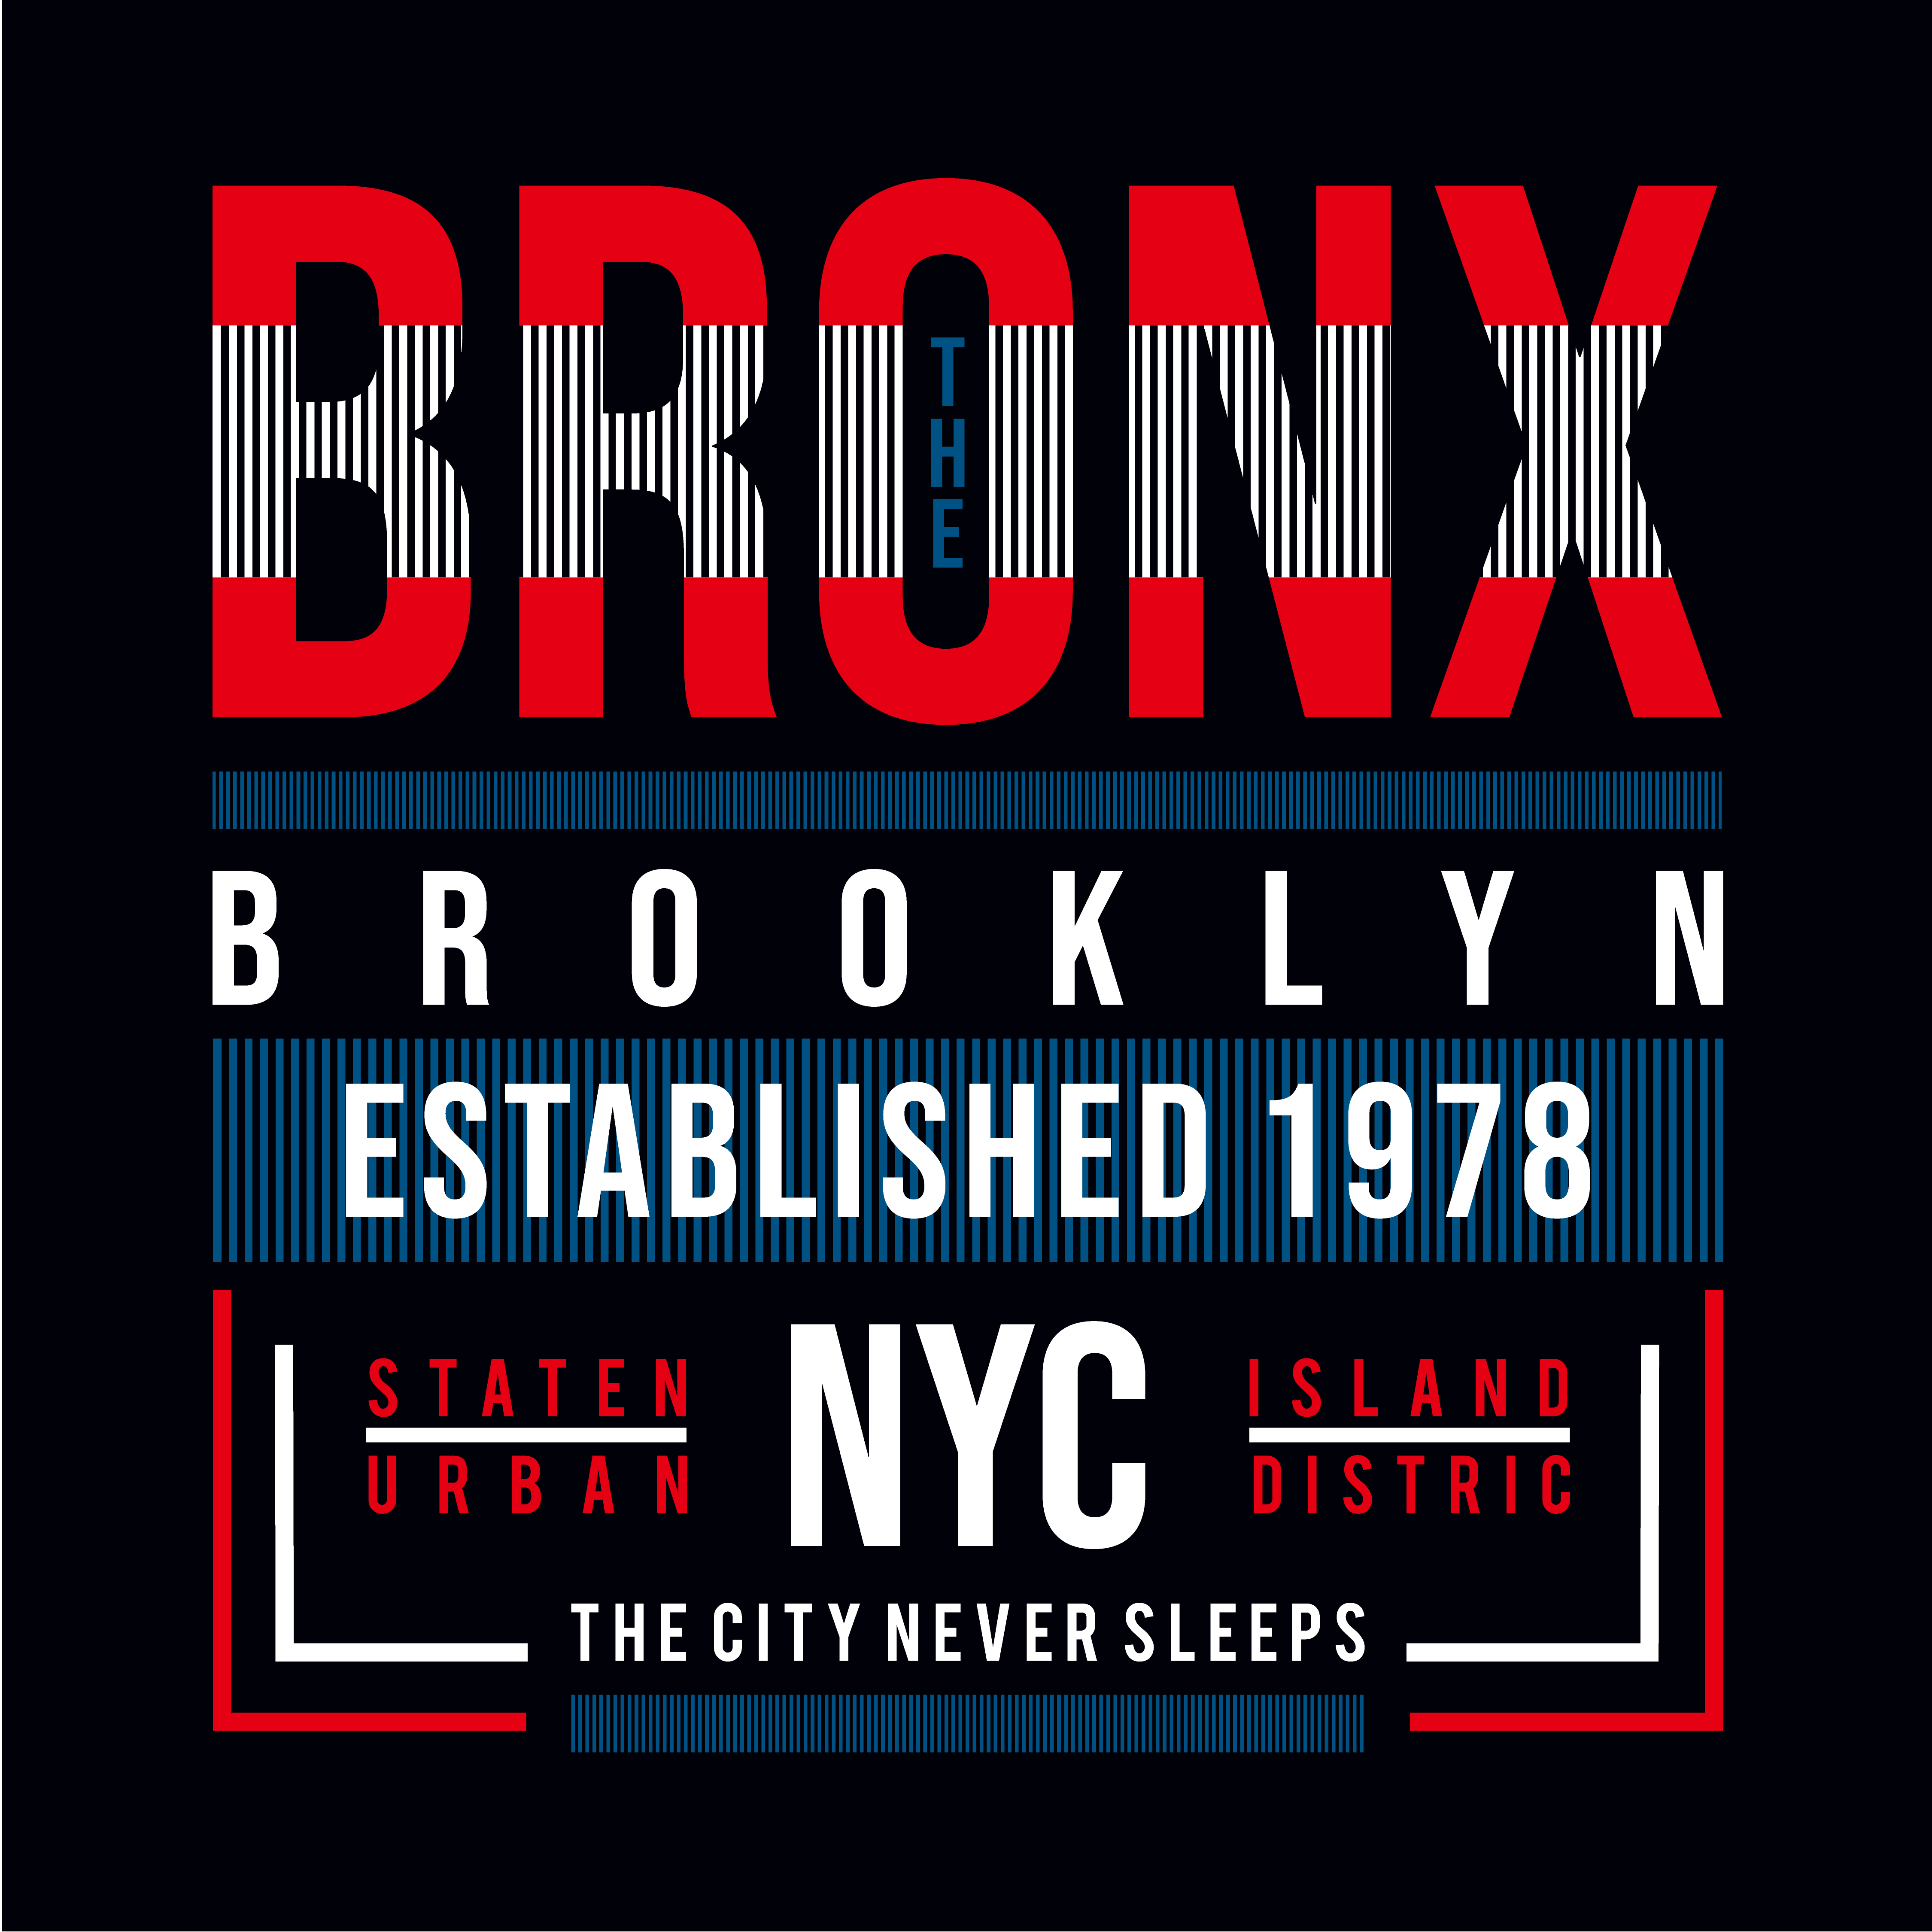 104b485b Bronx,brooklyn,new york tee,element graphic t shirt print - Download Free  Vector Art, Stock Graphics & Images